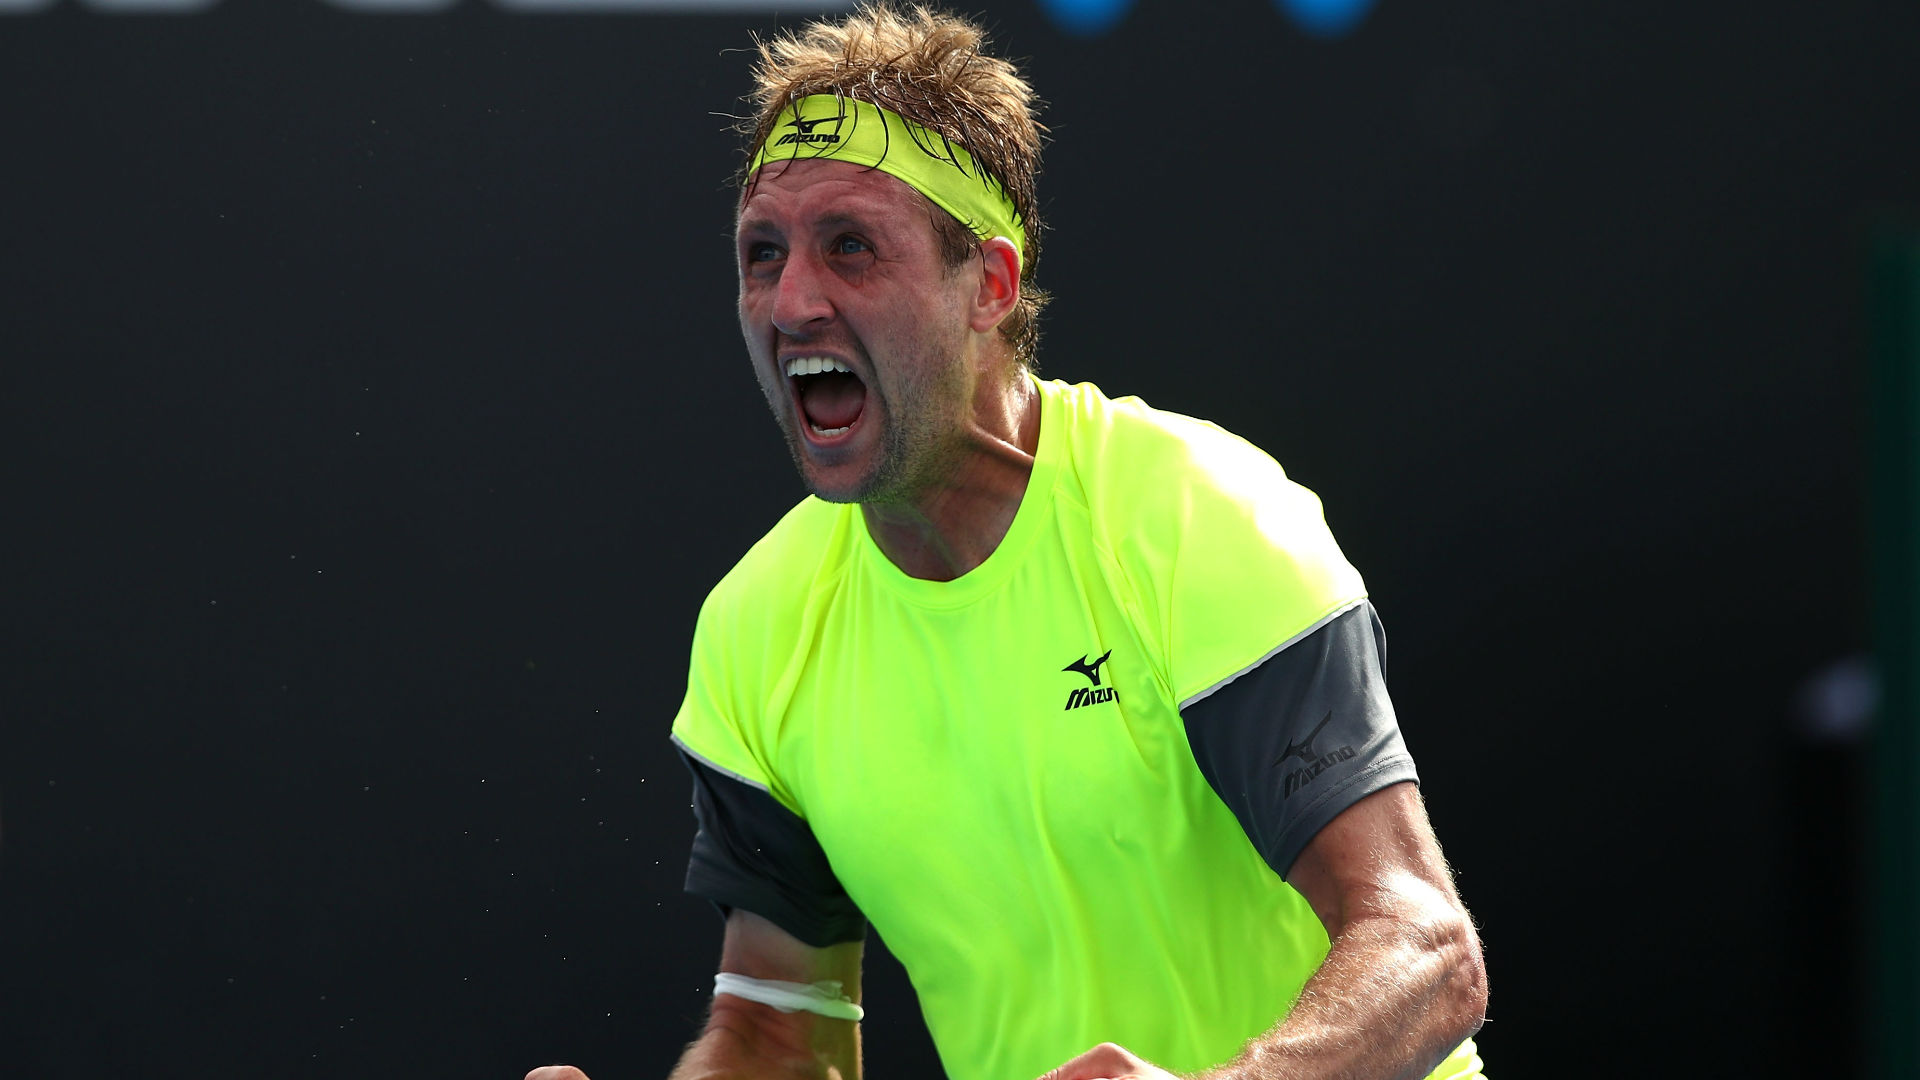 Former Vols standout Tennys Sandgren delivers shocking upset at Australian Open